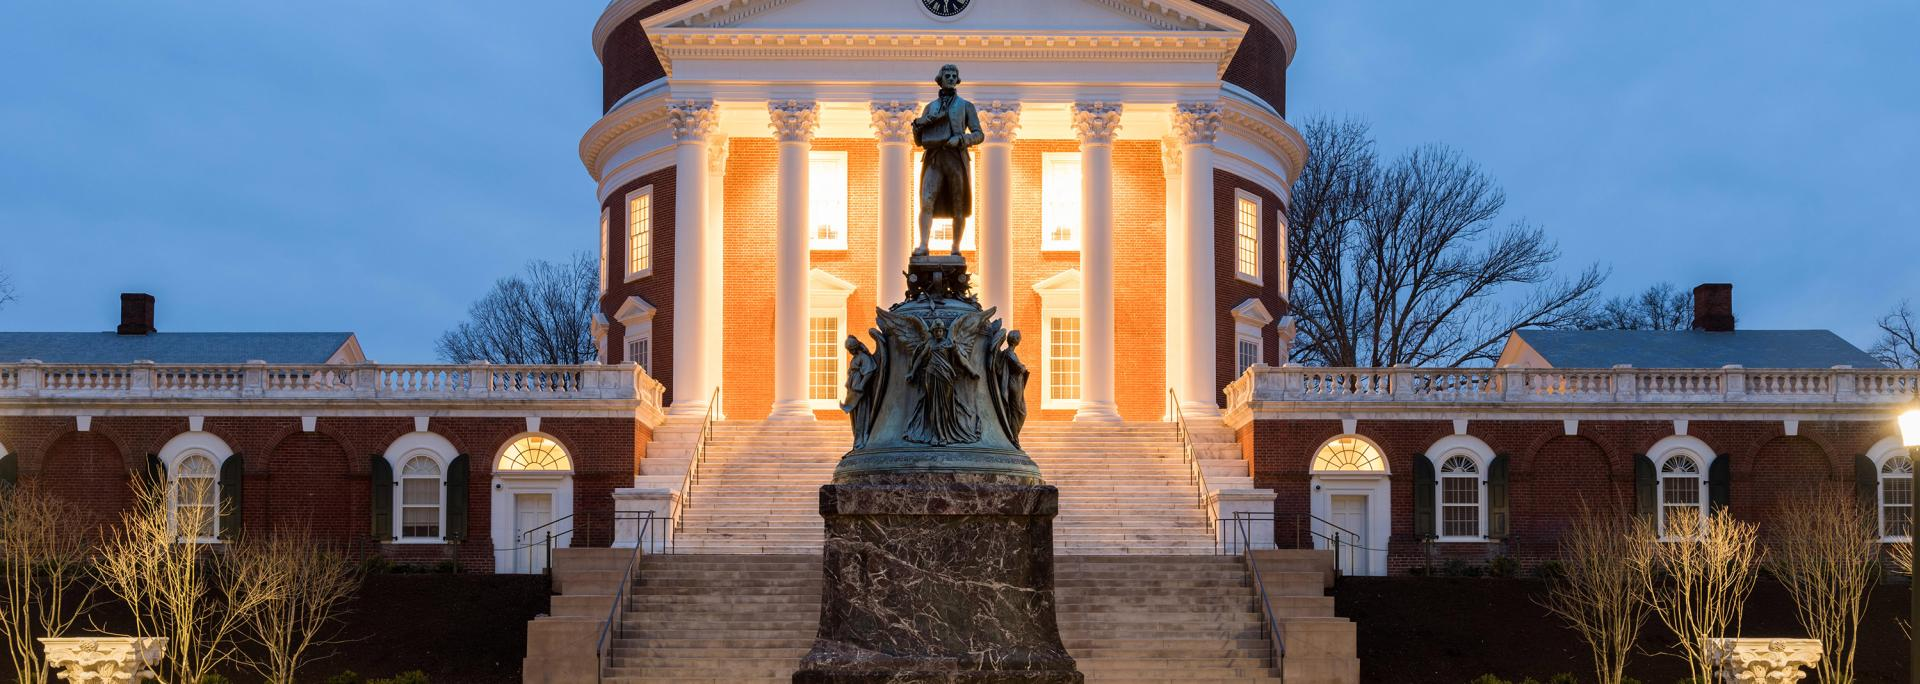 Evening photo of UVA Rotunda and Jefferson statue